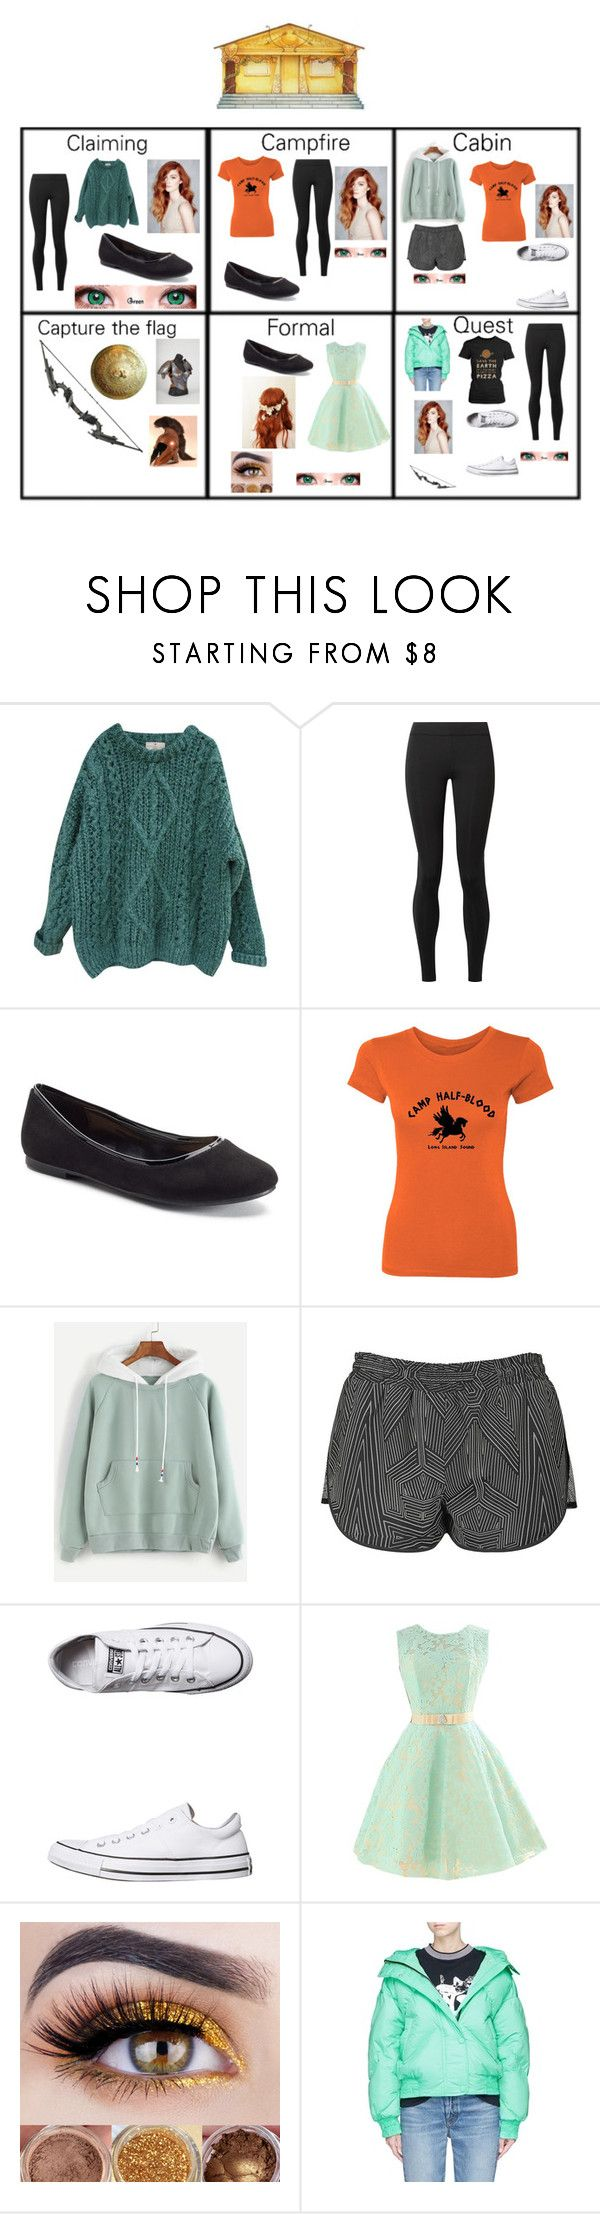 """""""PJO Fiona"""" by kawaiifangirl11 ❤ liked on Polyvore featuring Essentiel, The Row, LC Lauren Conrad, Eos, Topshop, Converse and Ienki Ienki"""